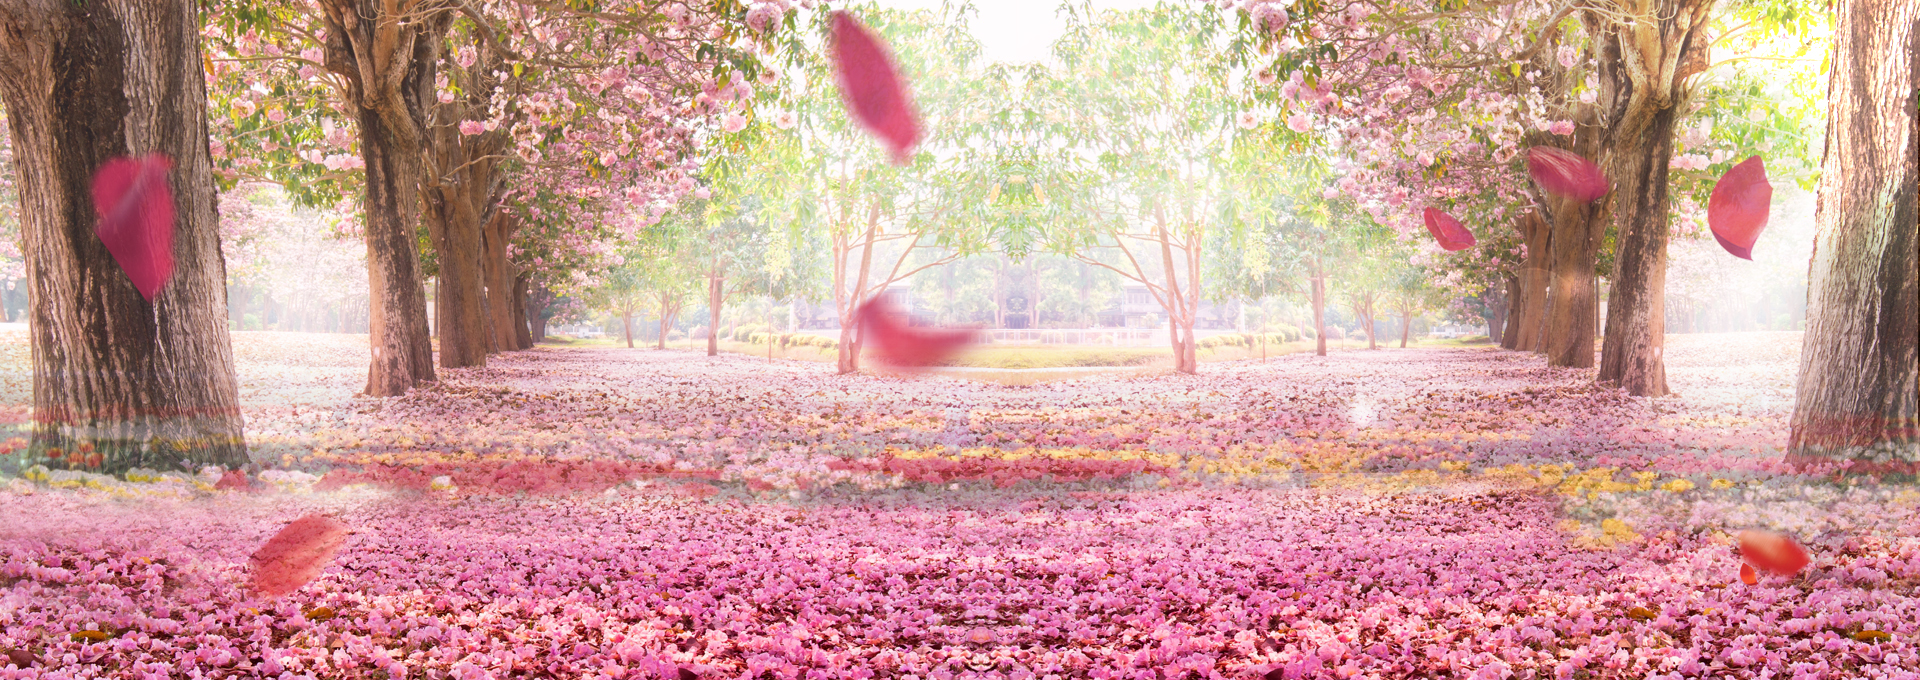 romantic background  pink  wedding  flowers background image for free download